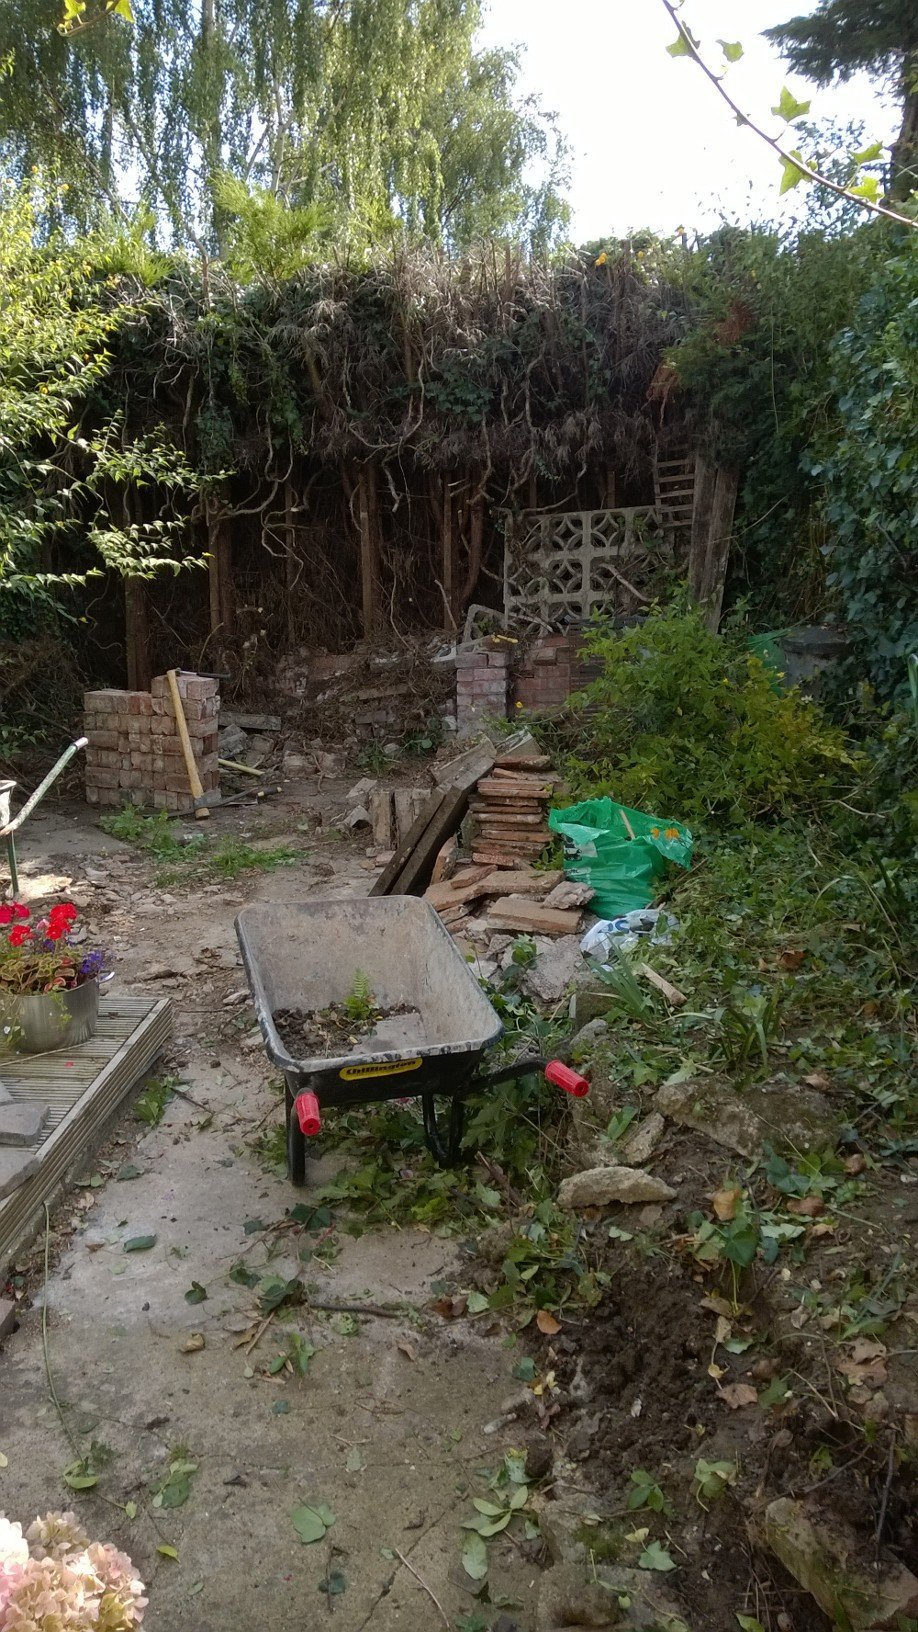 uncleaned garden area